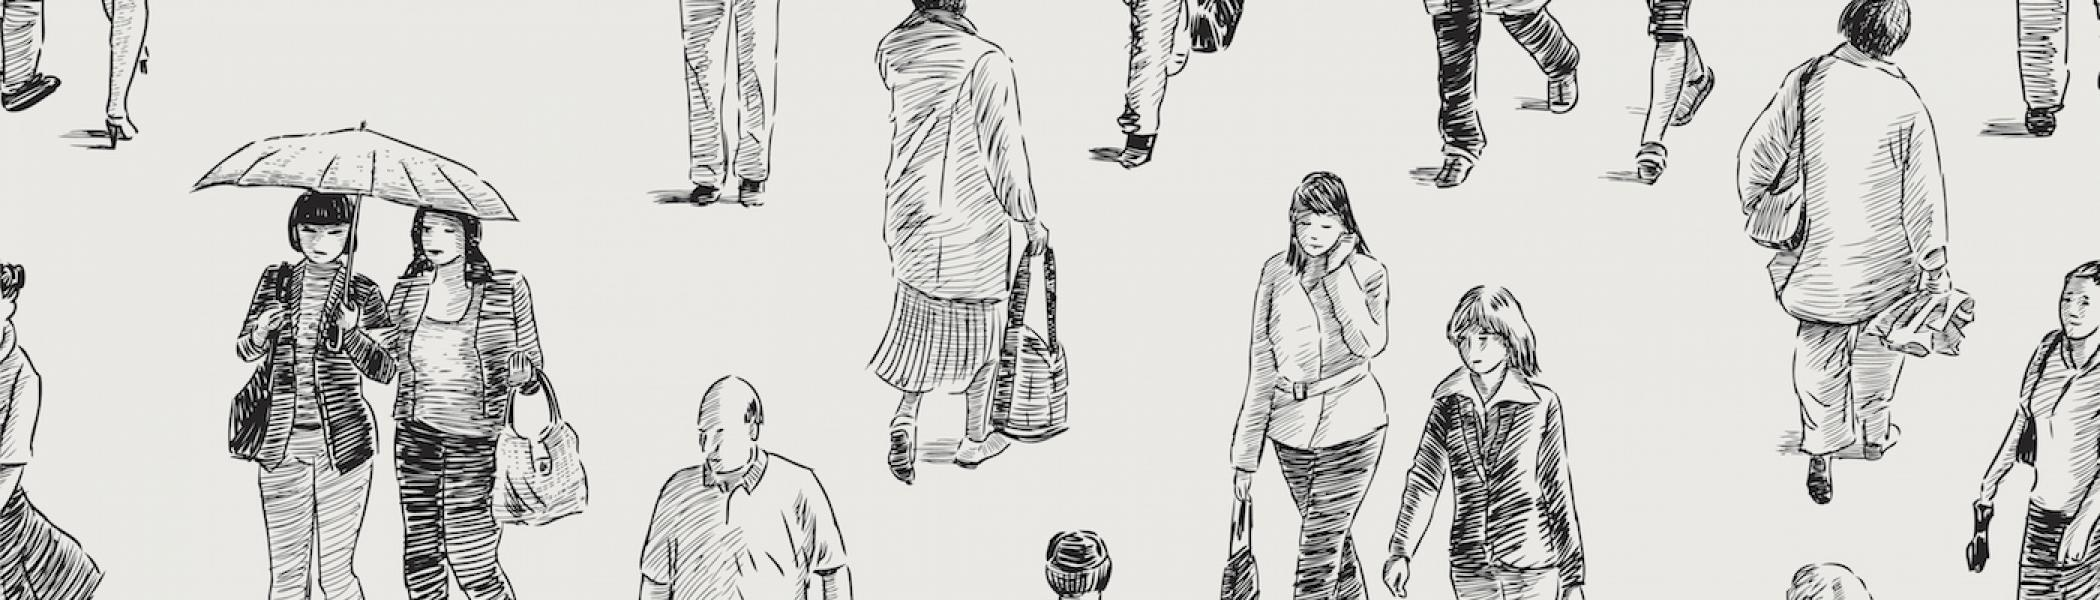 A sketch of multiple different people walking with a white background